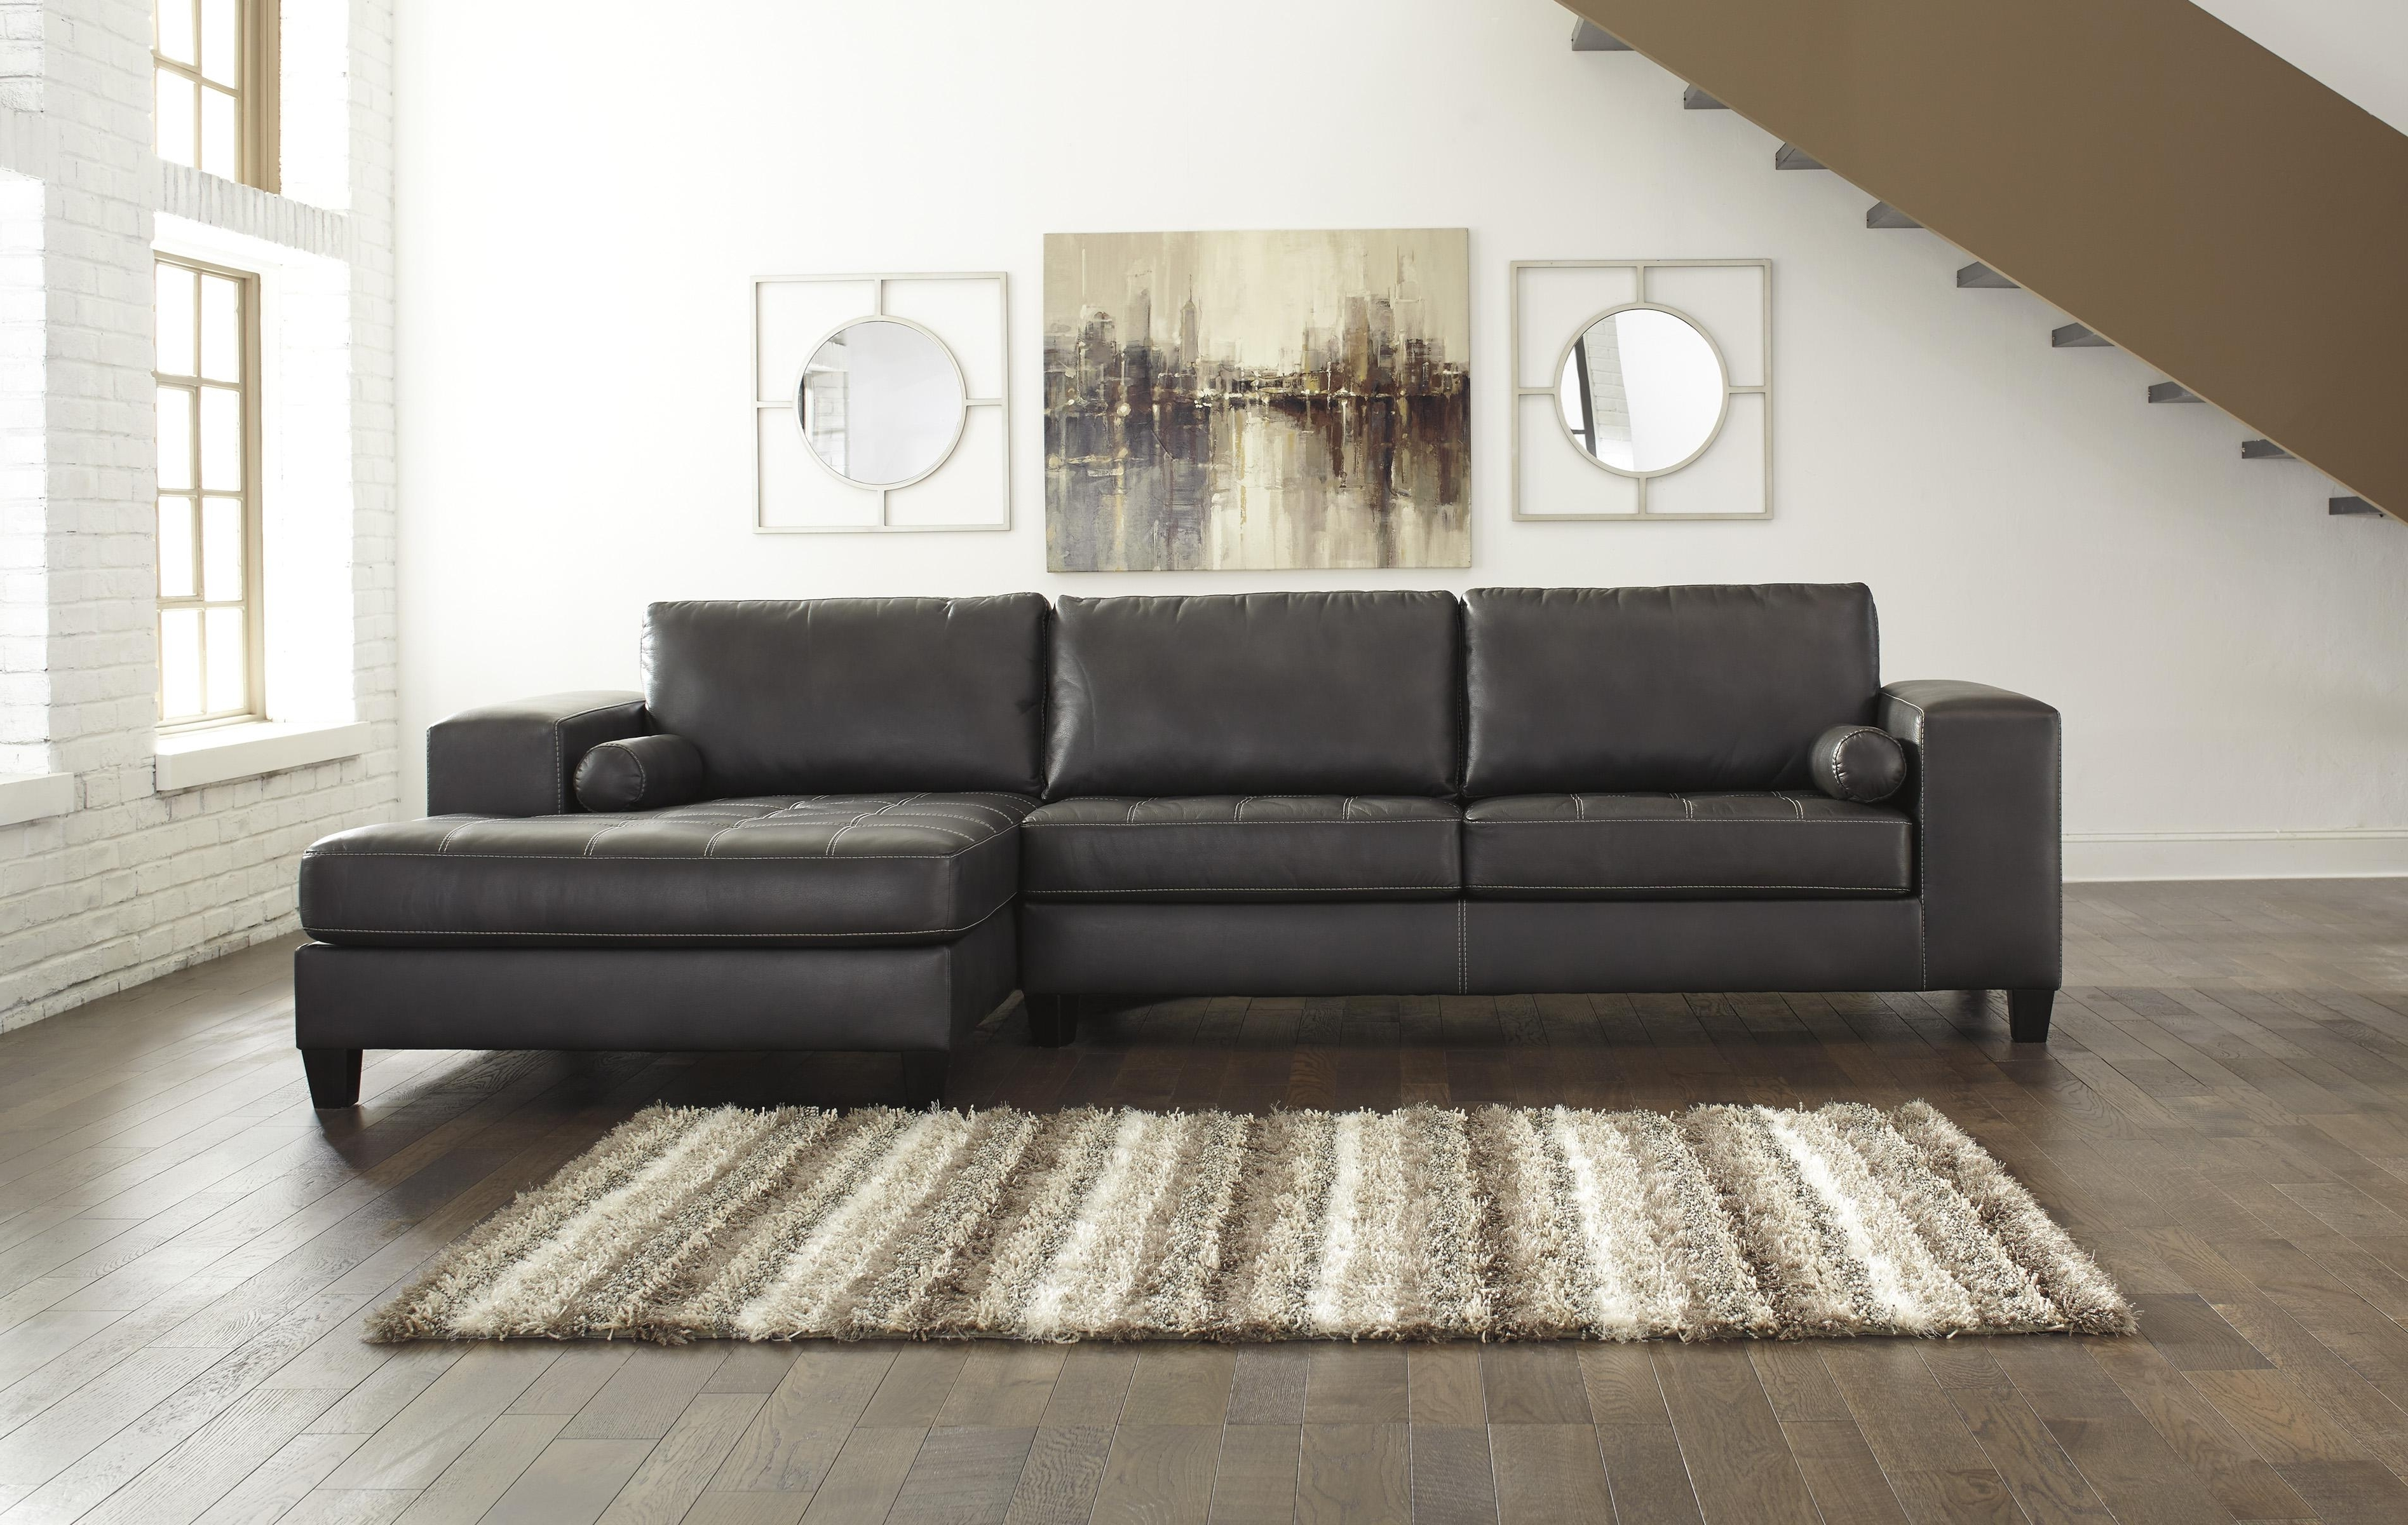 Furniture : Marvelous Ashley Furniture Near Me New Furniture Pertaining To 2018 Homemakers Sectional Sofas (View 6 of 15)